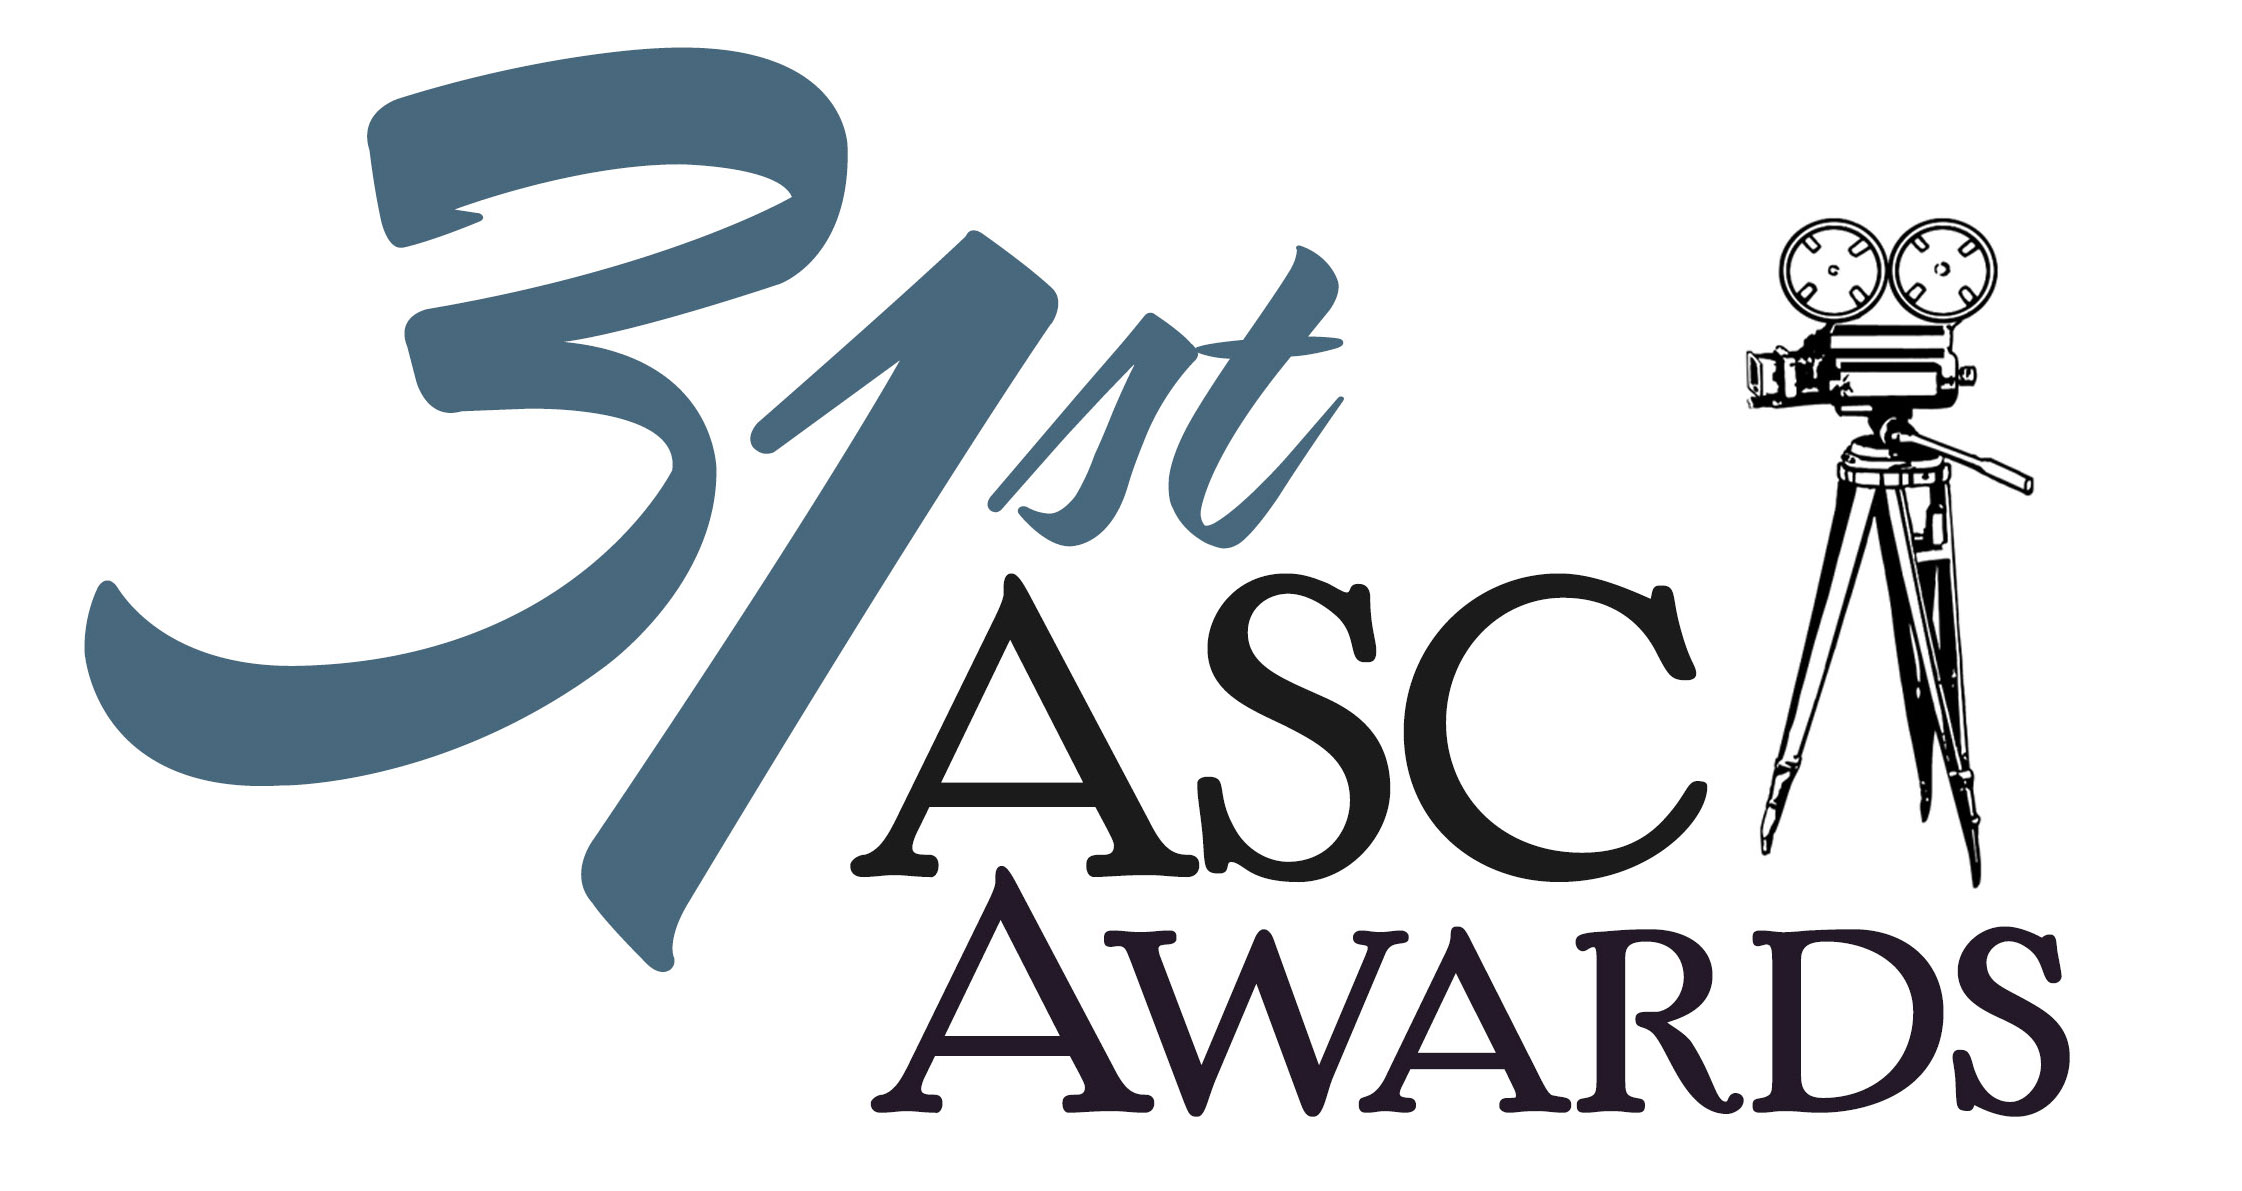 31st asc-awards-logo-long